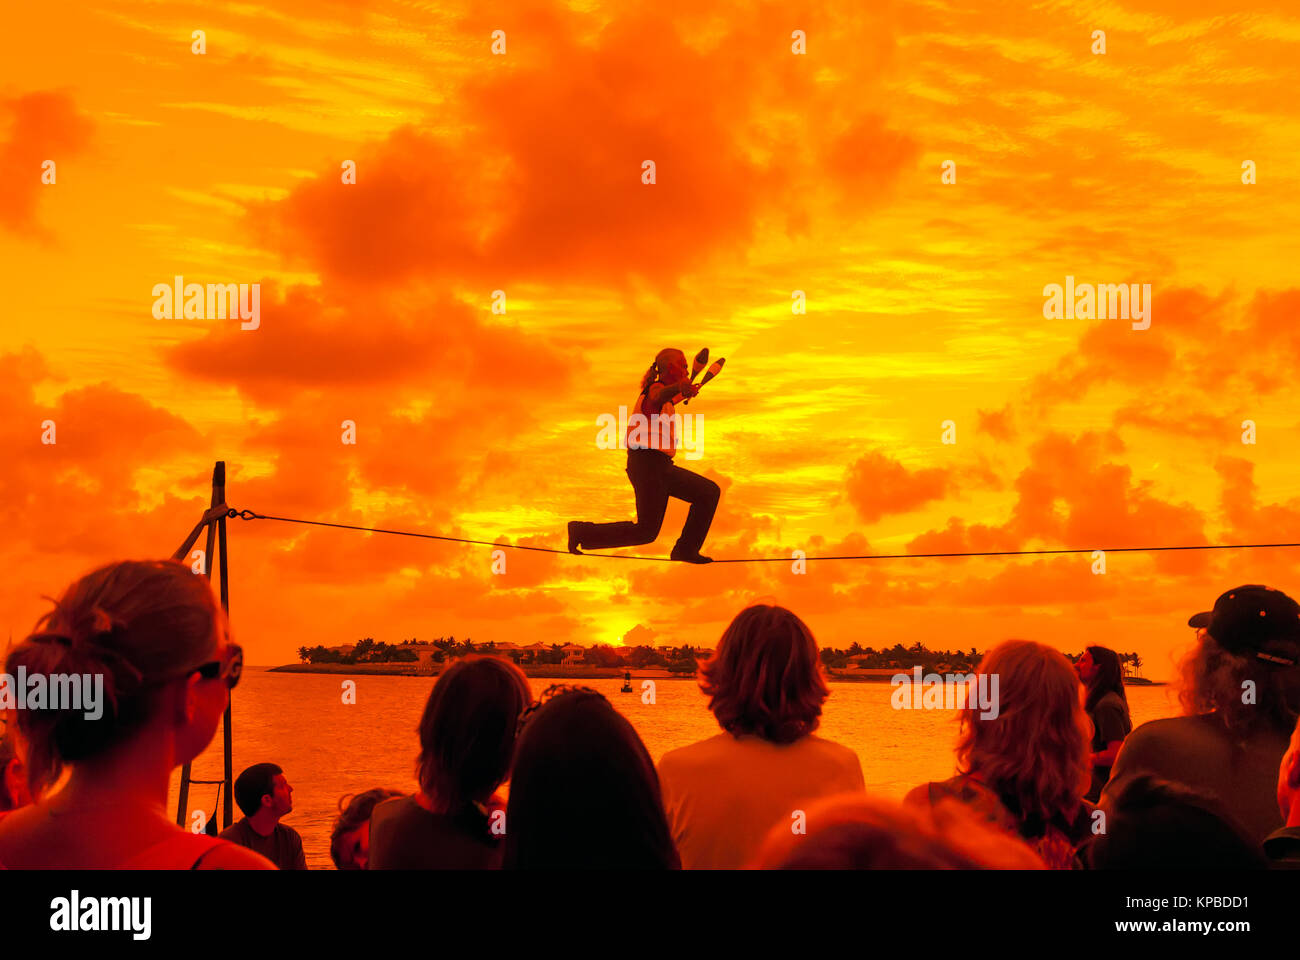 Tight Rope Walker at Key West Sunset Celebration in Mallory Square with bright orange sunset, Florida - Stock Image